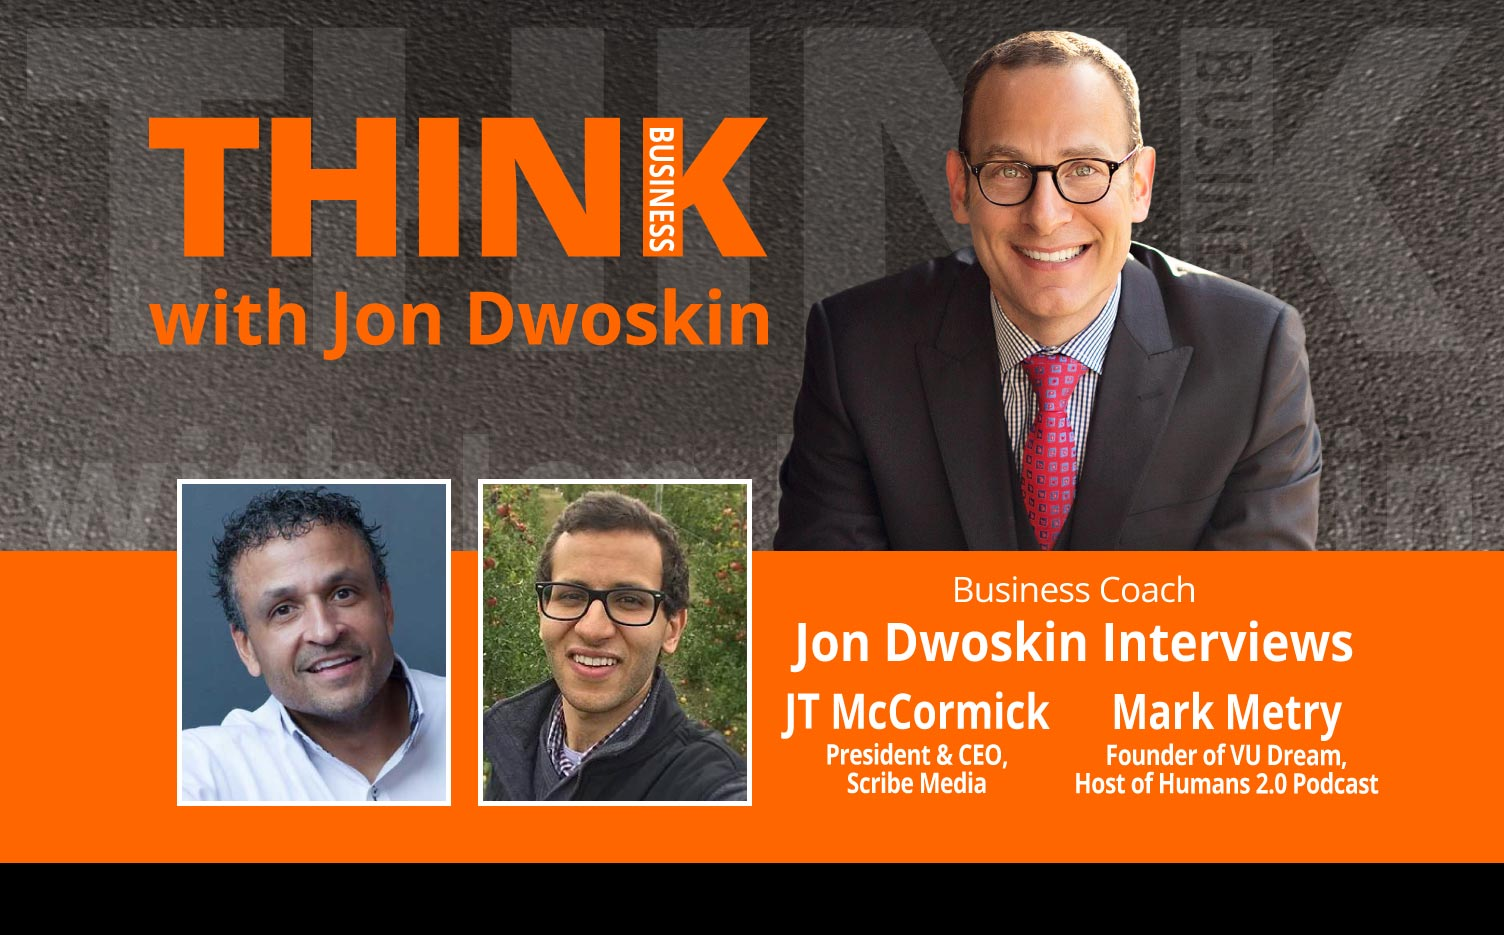 THINK Business Podcast: Jon Dwoskin Interviews JT McCormick President & CEO at Scribe Media and Mark Metry, Founder of VU Dream and Host of Humans 2.0 Podcast